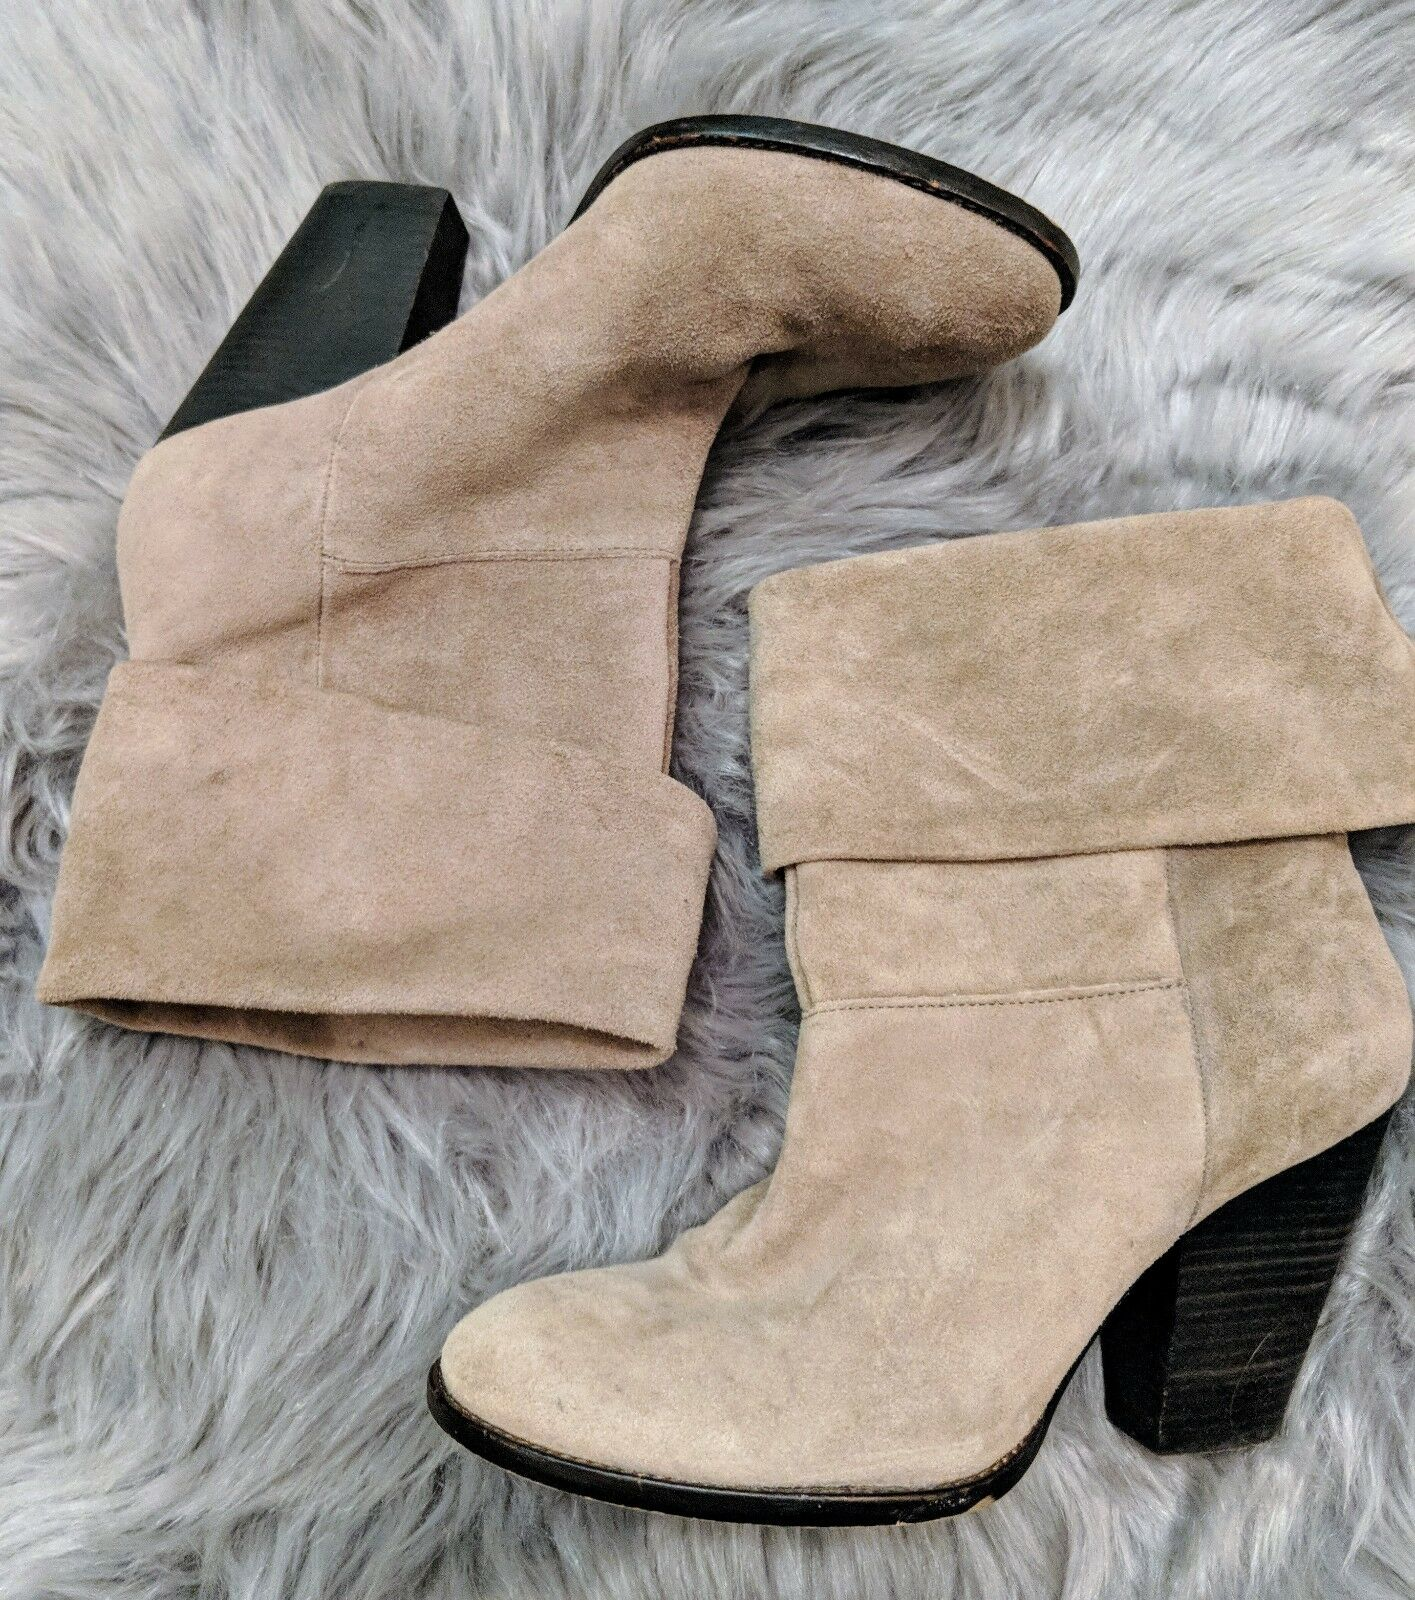 Vince Camuto womens 8.5 taupe tan brown suede leather slouc ankle boots NEW  155